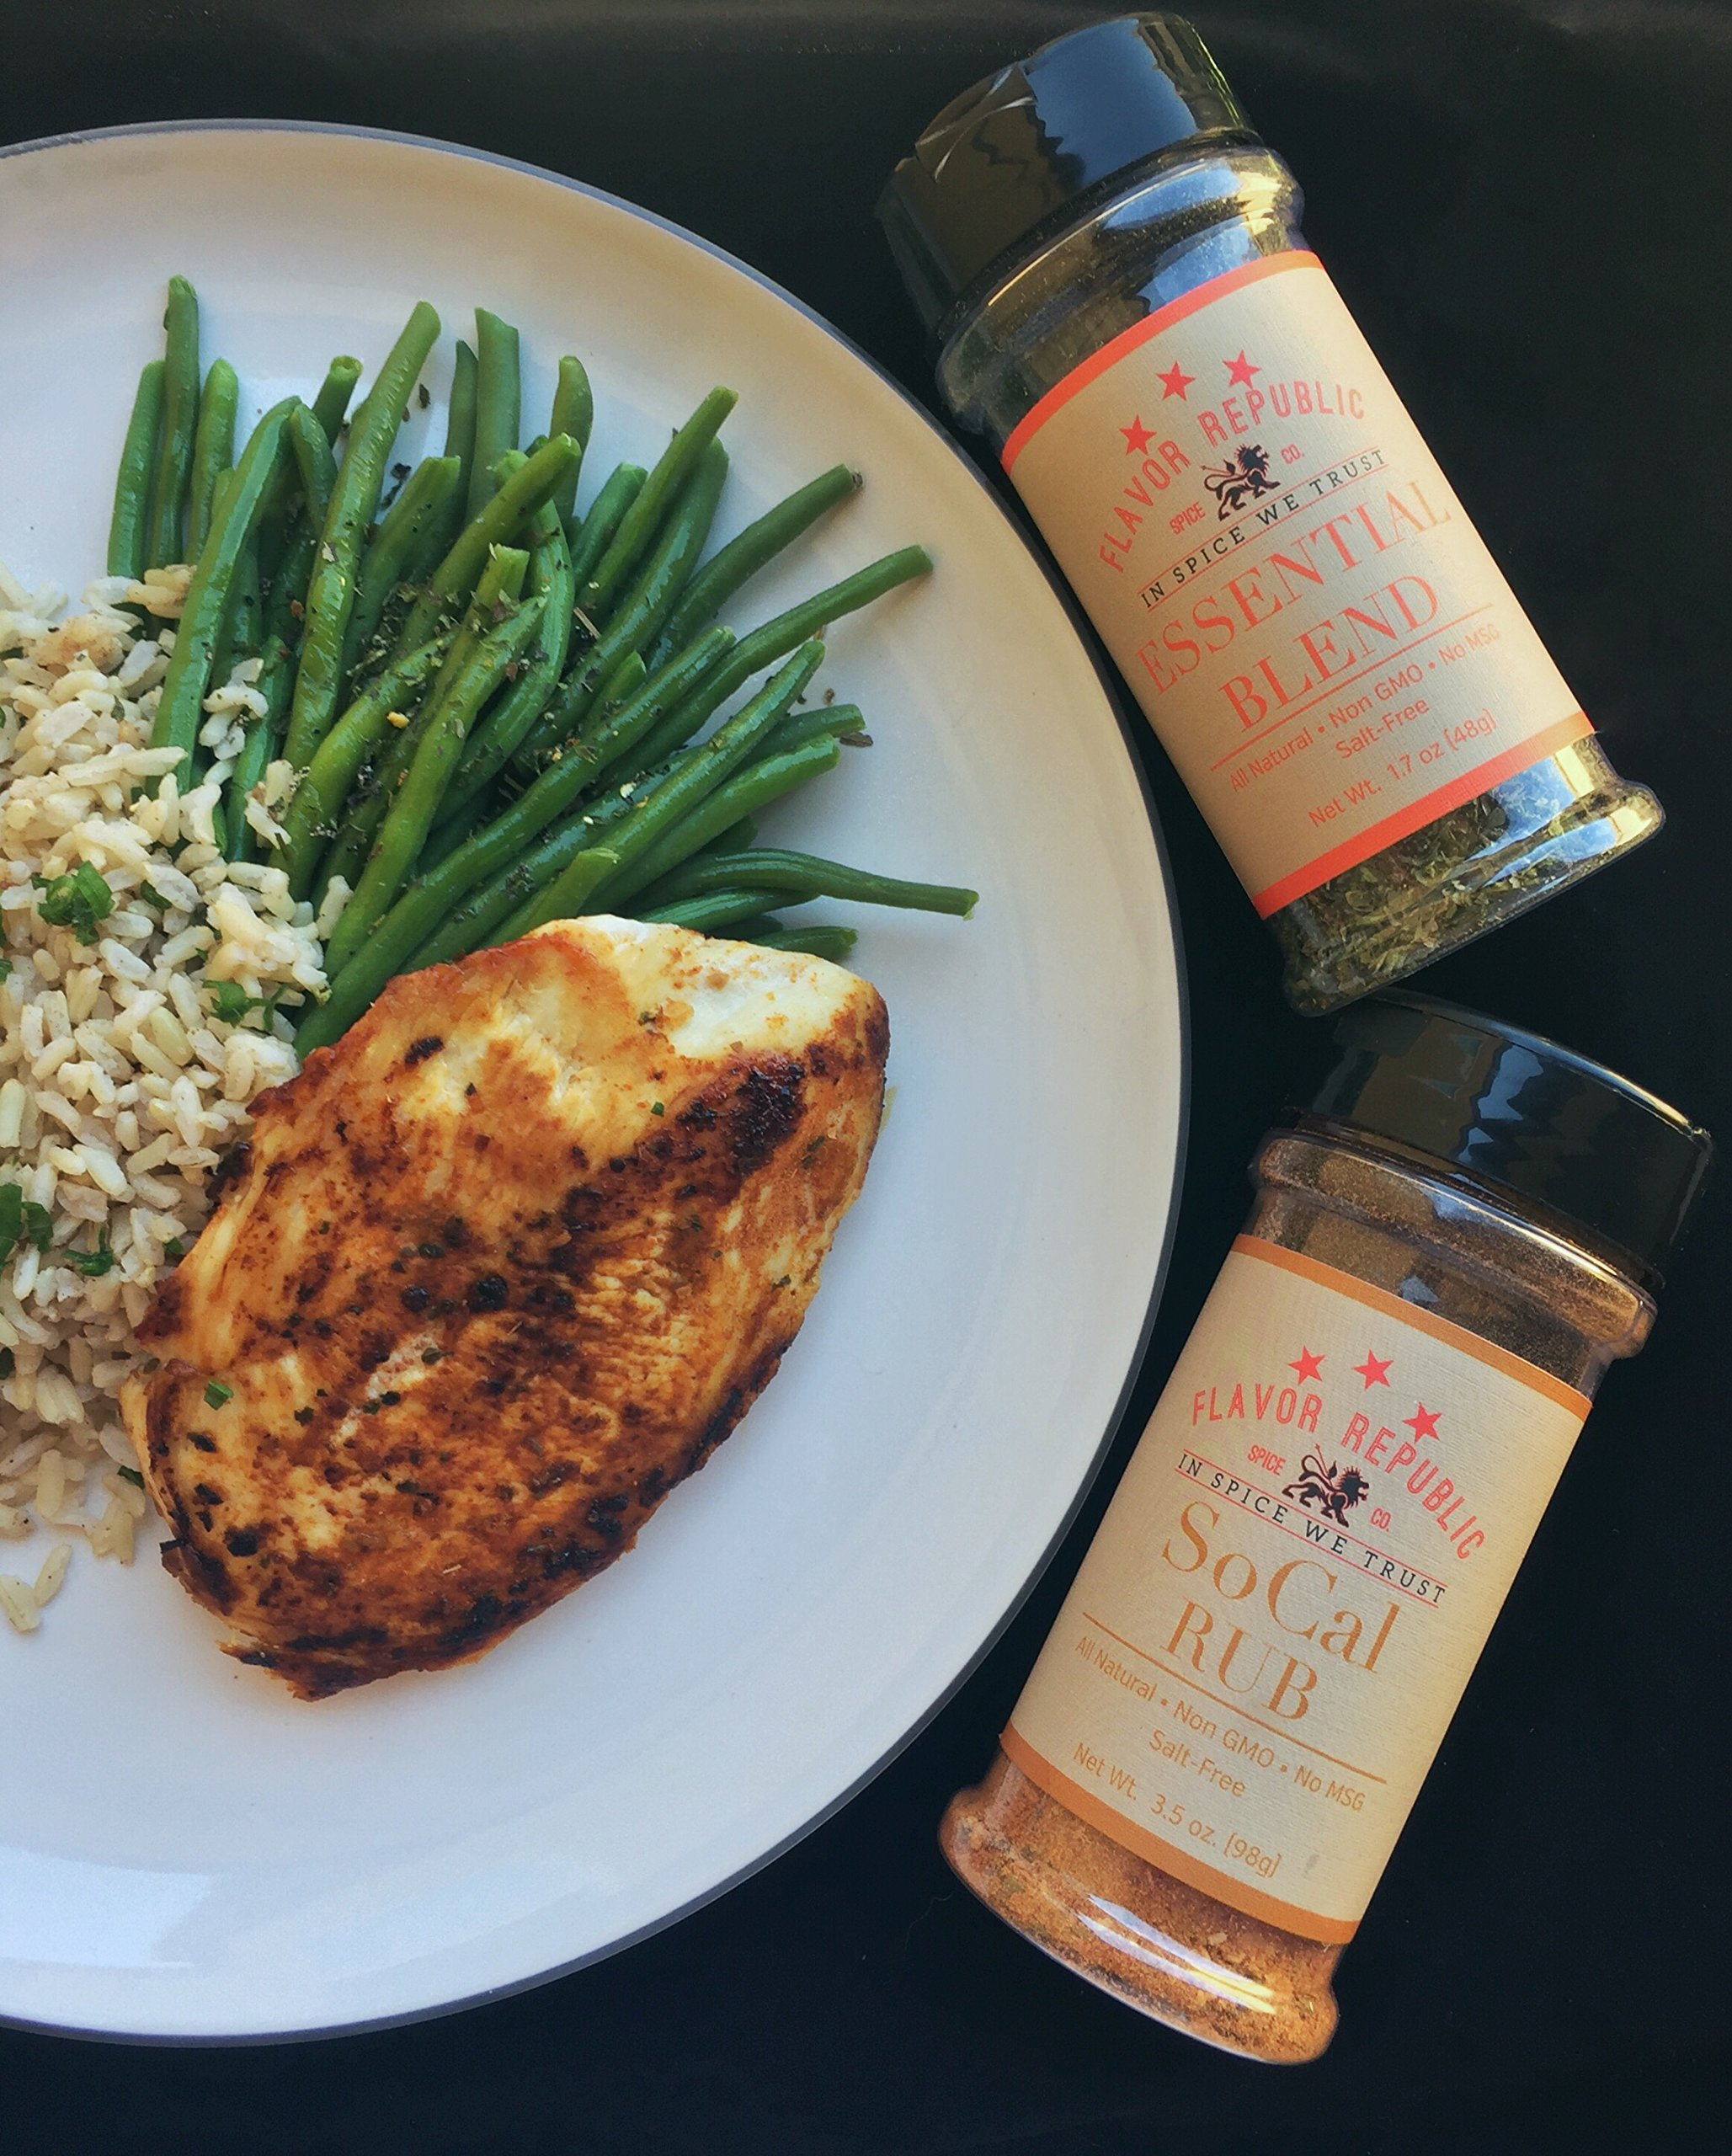 SoCal Rub (3.5 oz bottle) - salt free, all natural, non GMO, gluten free, seasoning blend for everything and is perfect for weight loss and a low sodium diet! by Flavor Republic (Image #6)